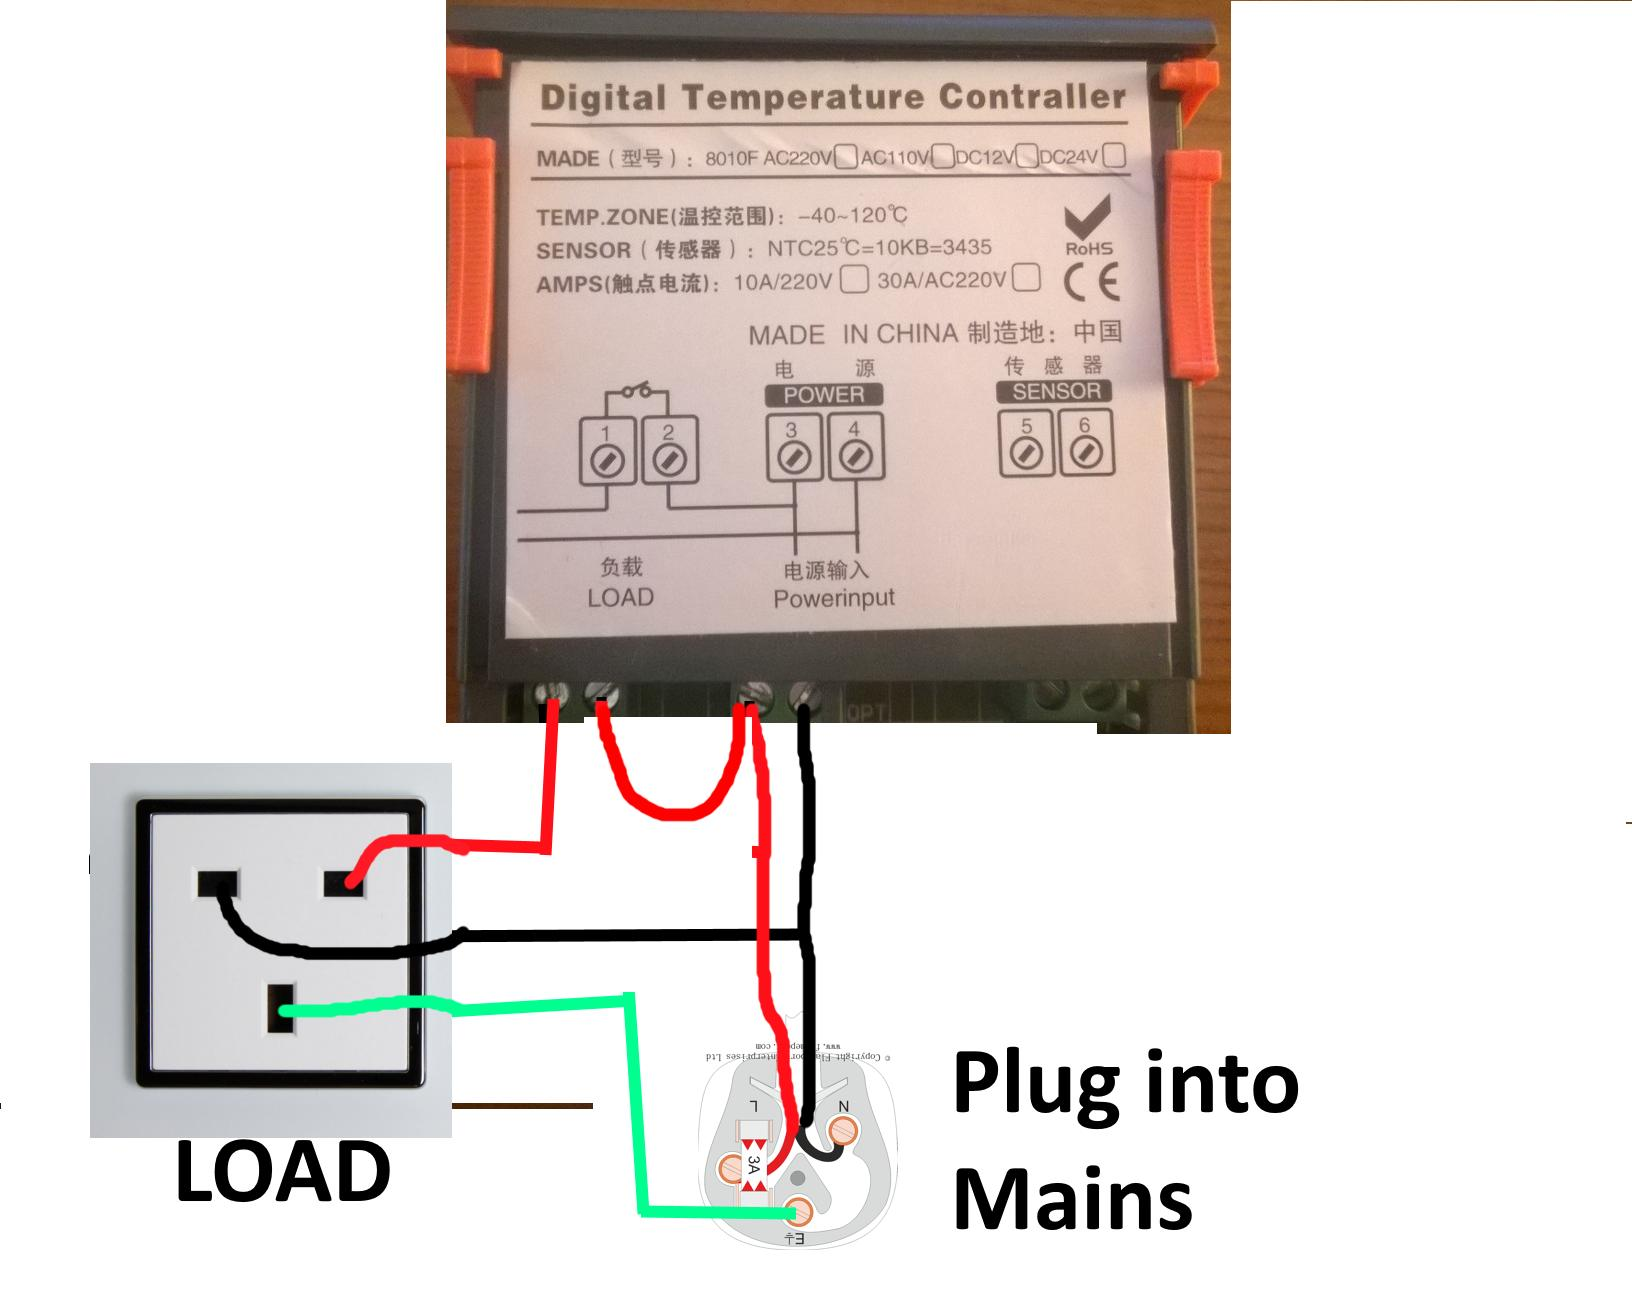 digital temperature controller wiring diagram scion xb stereo advice on power supply to